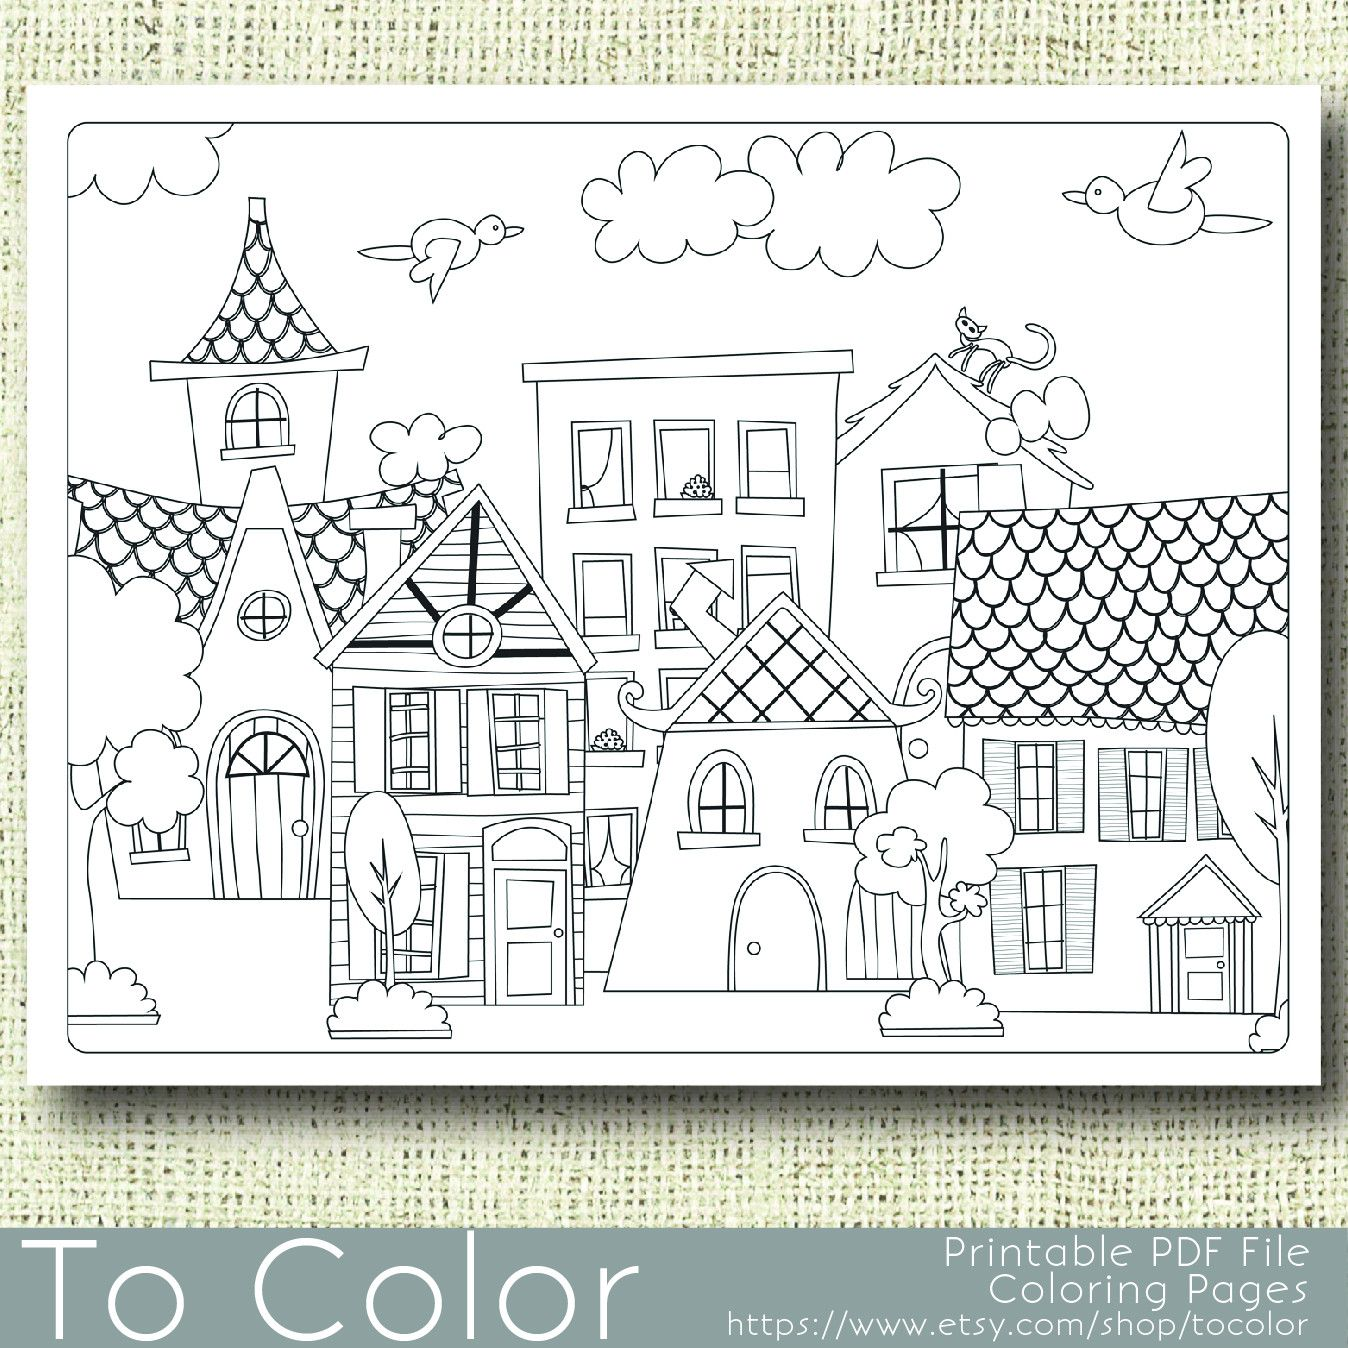 This printable coloring page features a scene of village houses and will be fun to color in a variety of ways